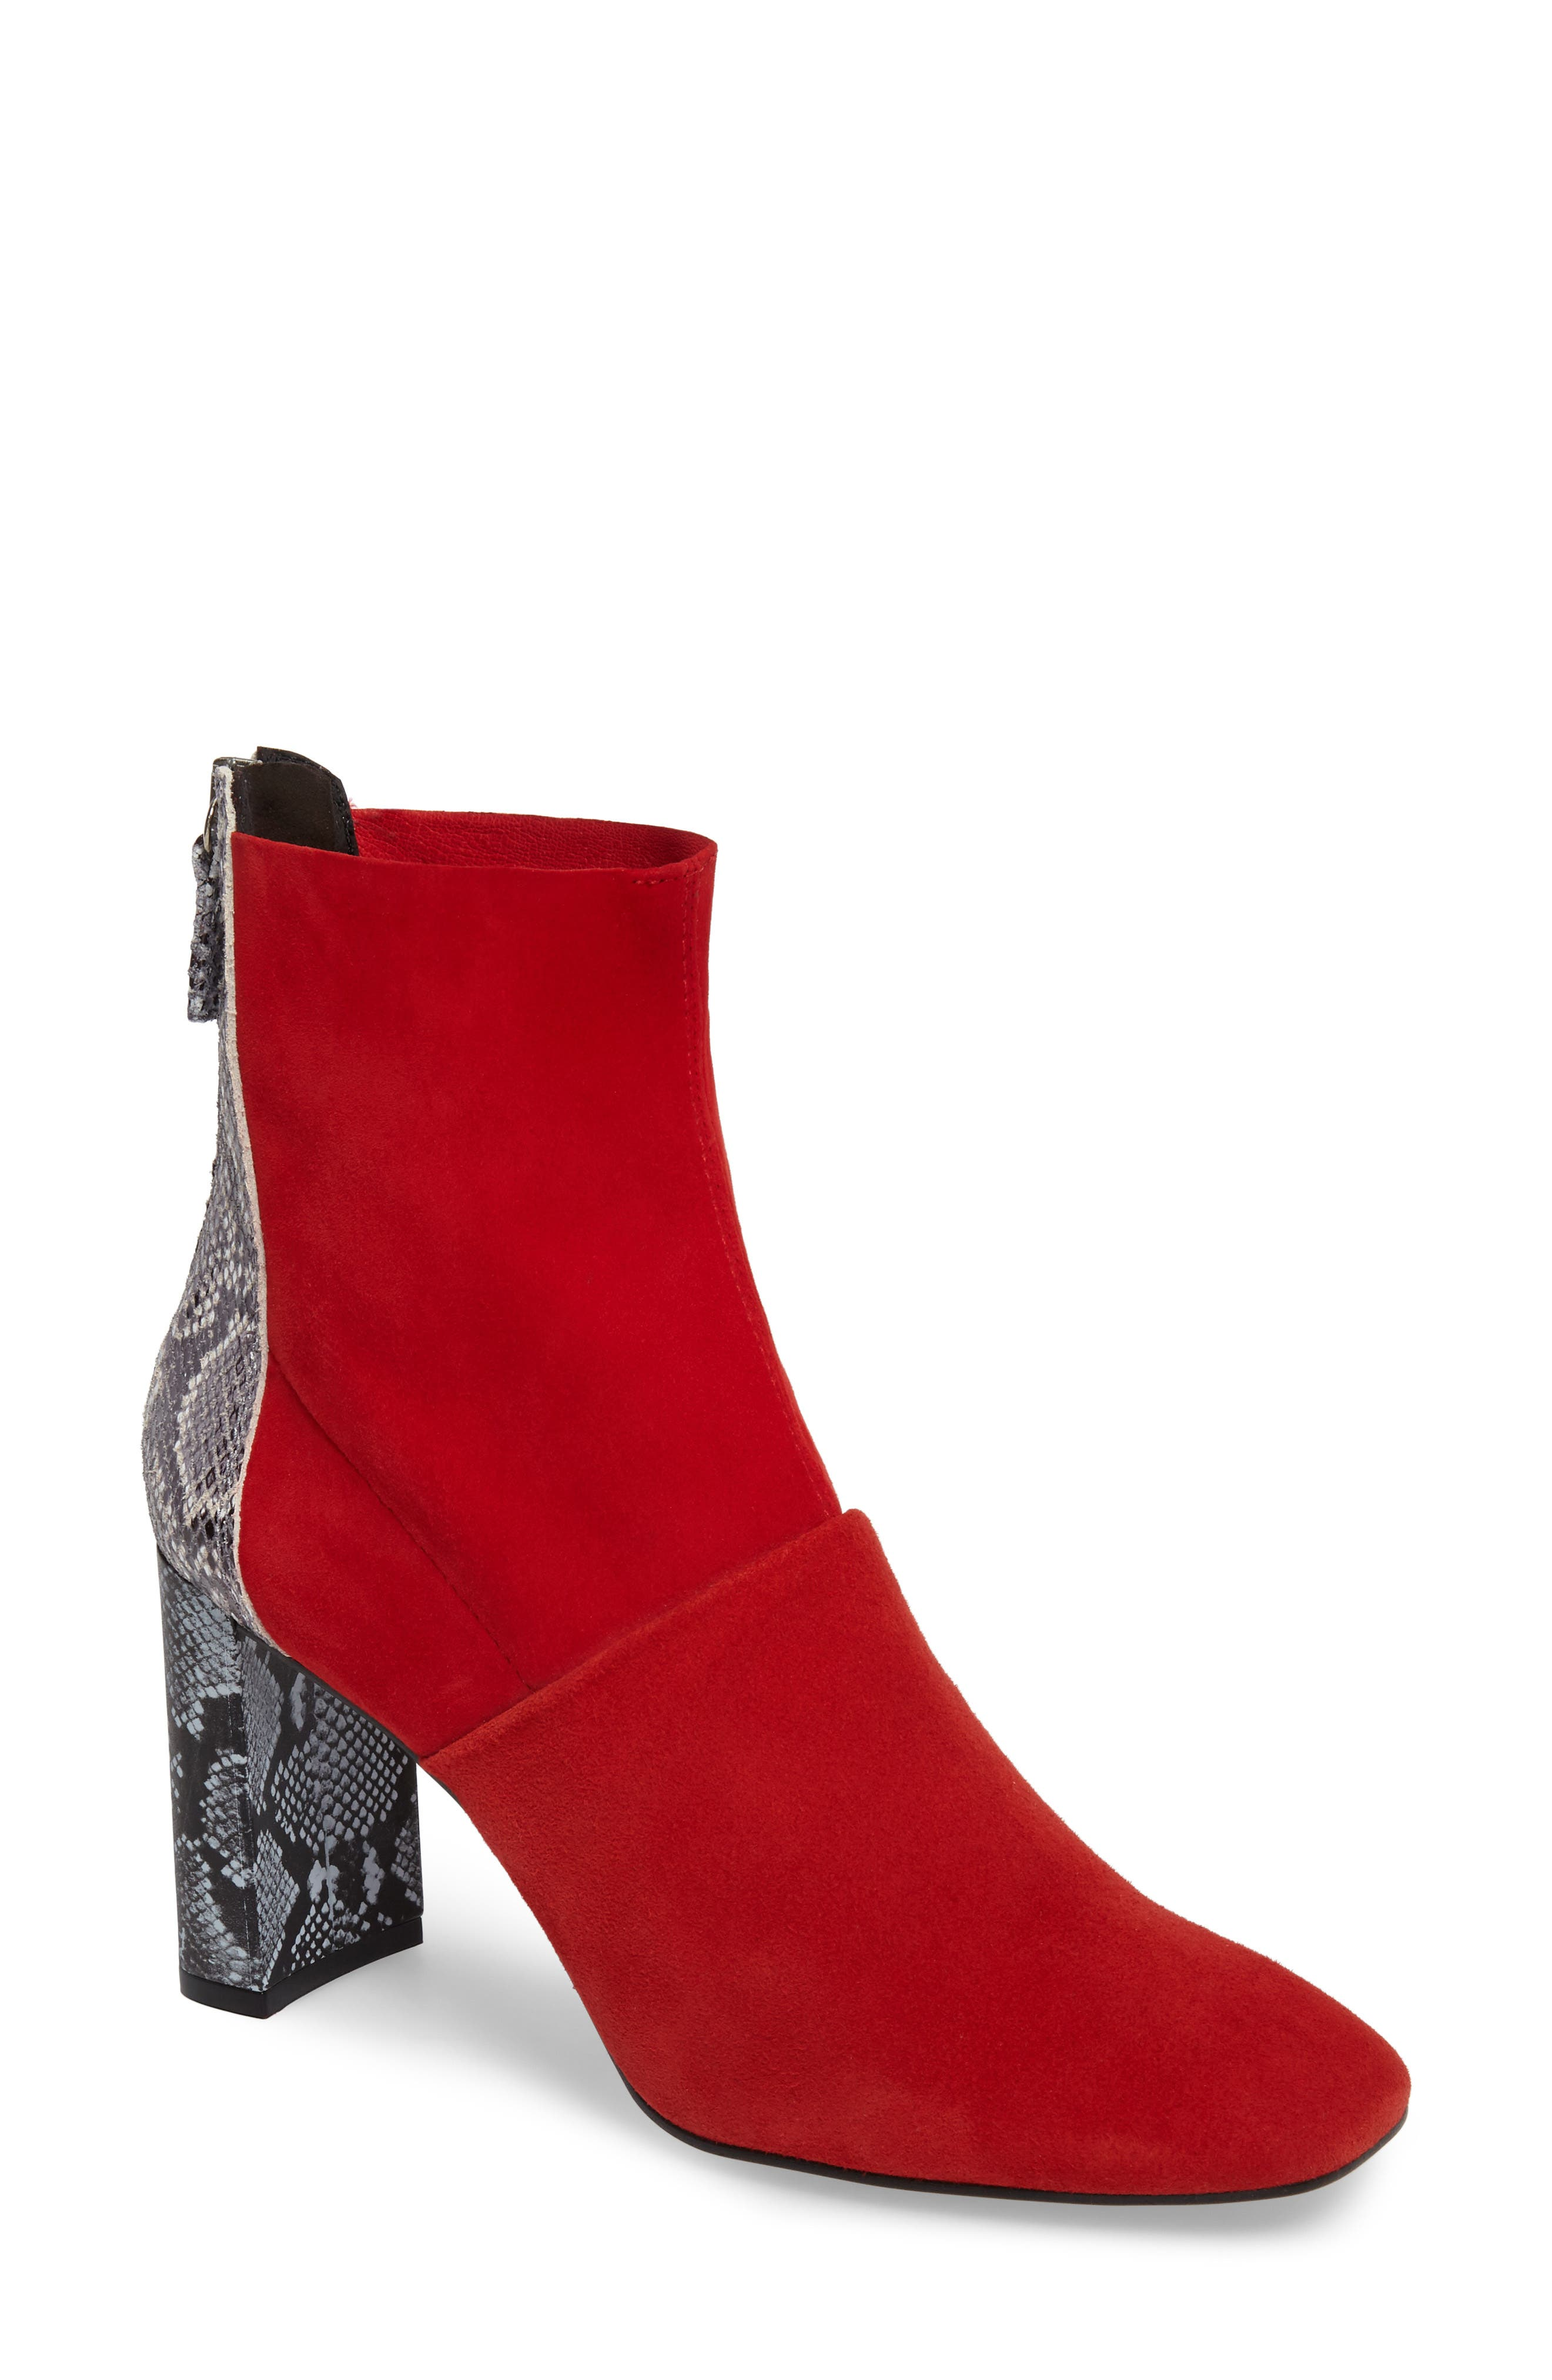 Hunk Snake-Textured Bootie,                         Main,                         color, Red Multi